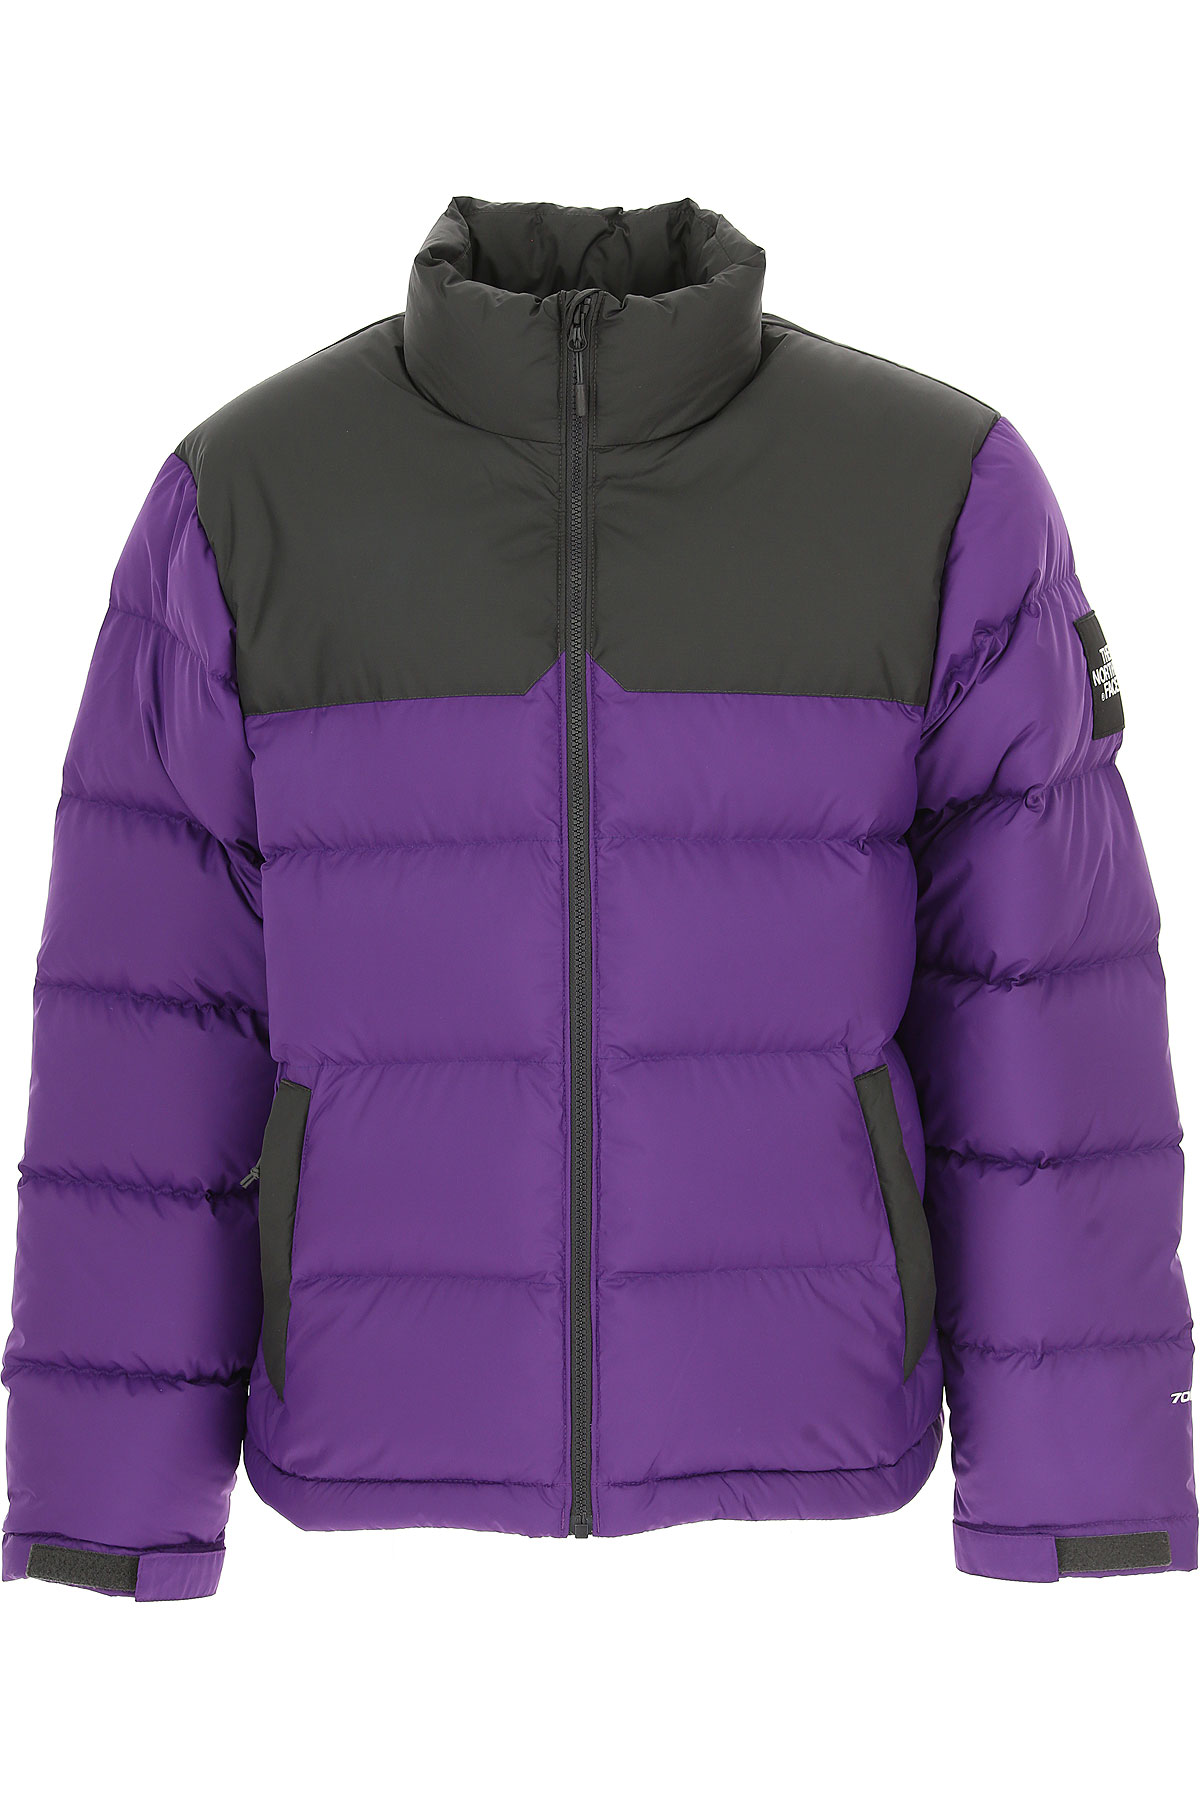 Image of The North Face Down Jacket for Men, Puffer Ski Jacket, Violet, Down, 2017, L S XL